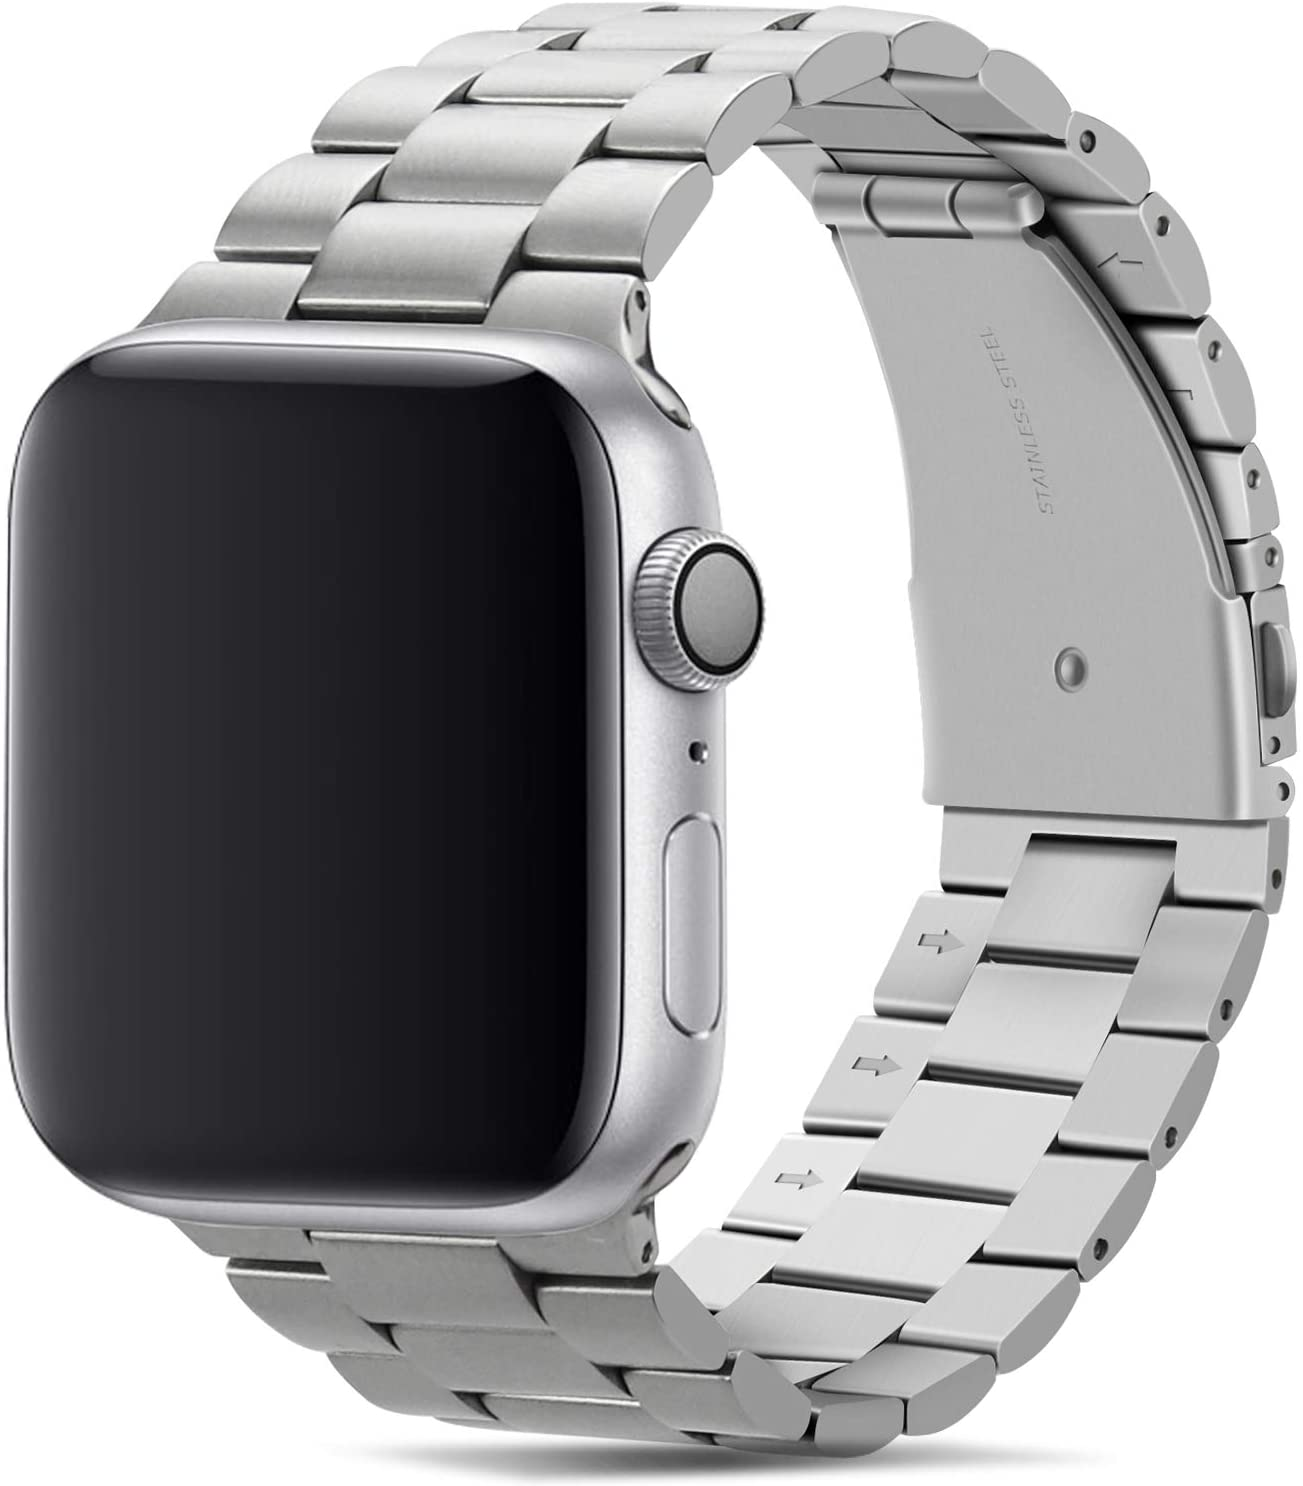 Tasikar Band Compatible with Apple Watch Band 44mm 42mm Premium Stainless Steel Metal Replacement Strap Compatible with Apple Watch Series 6 5 4 3 2 1, SE (Silver)